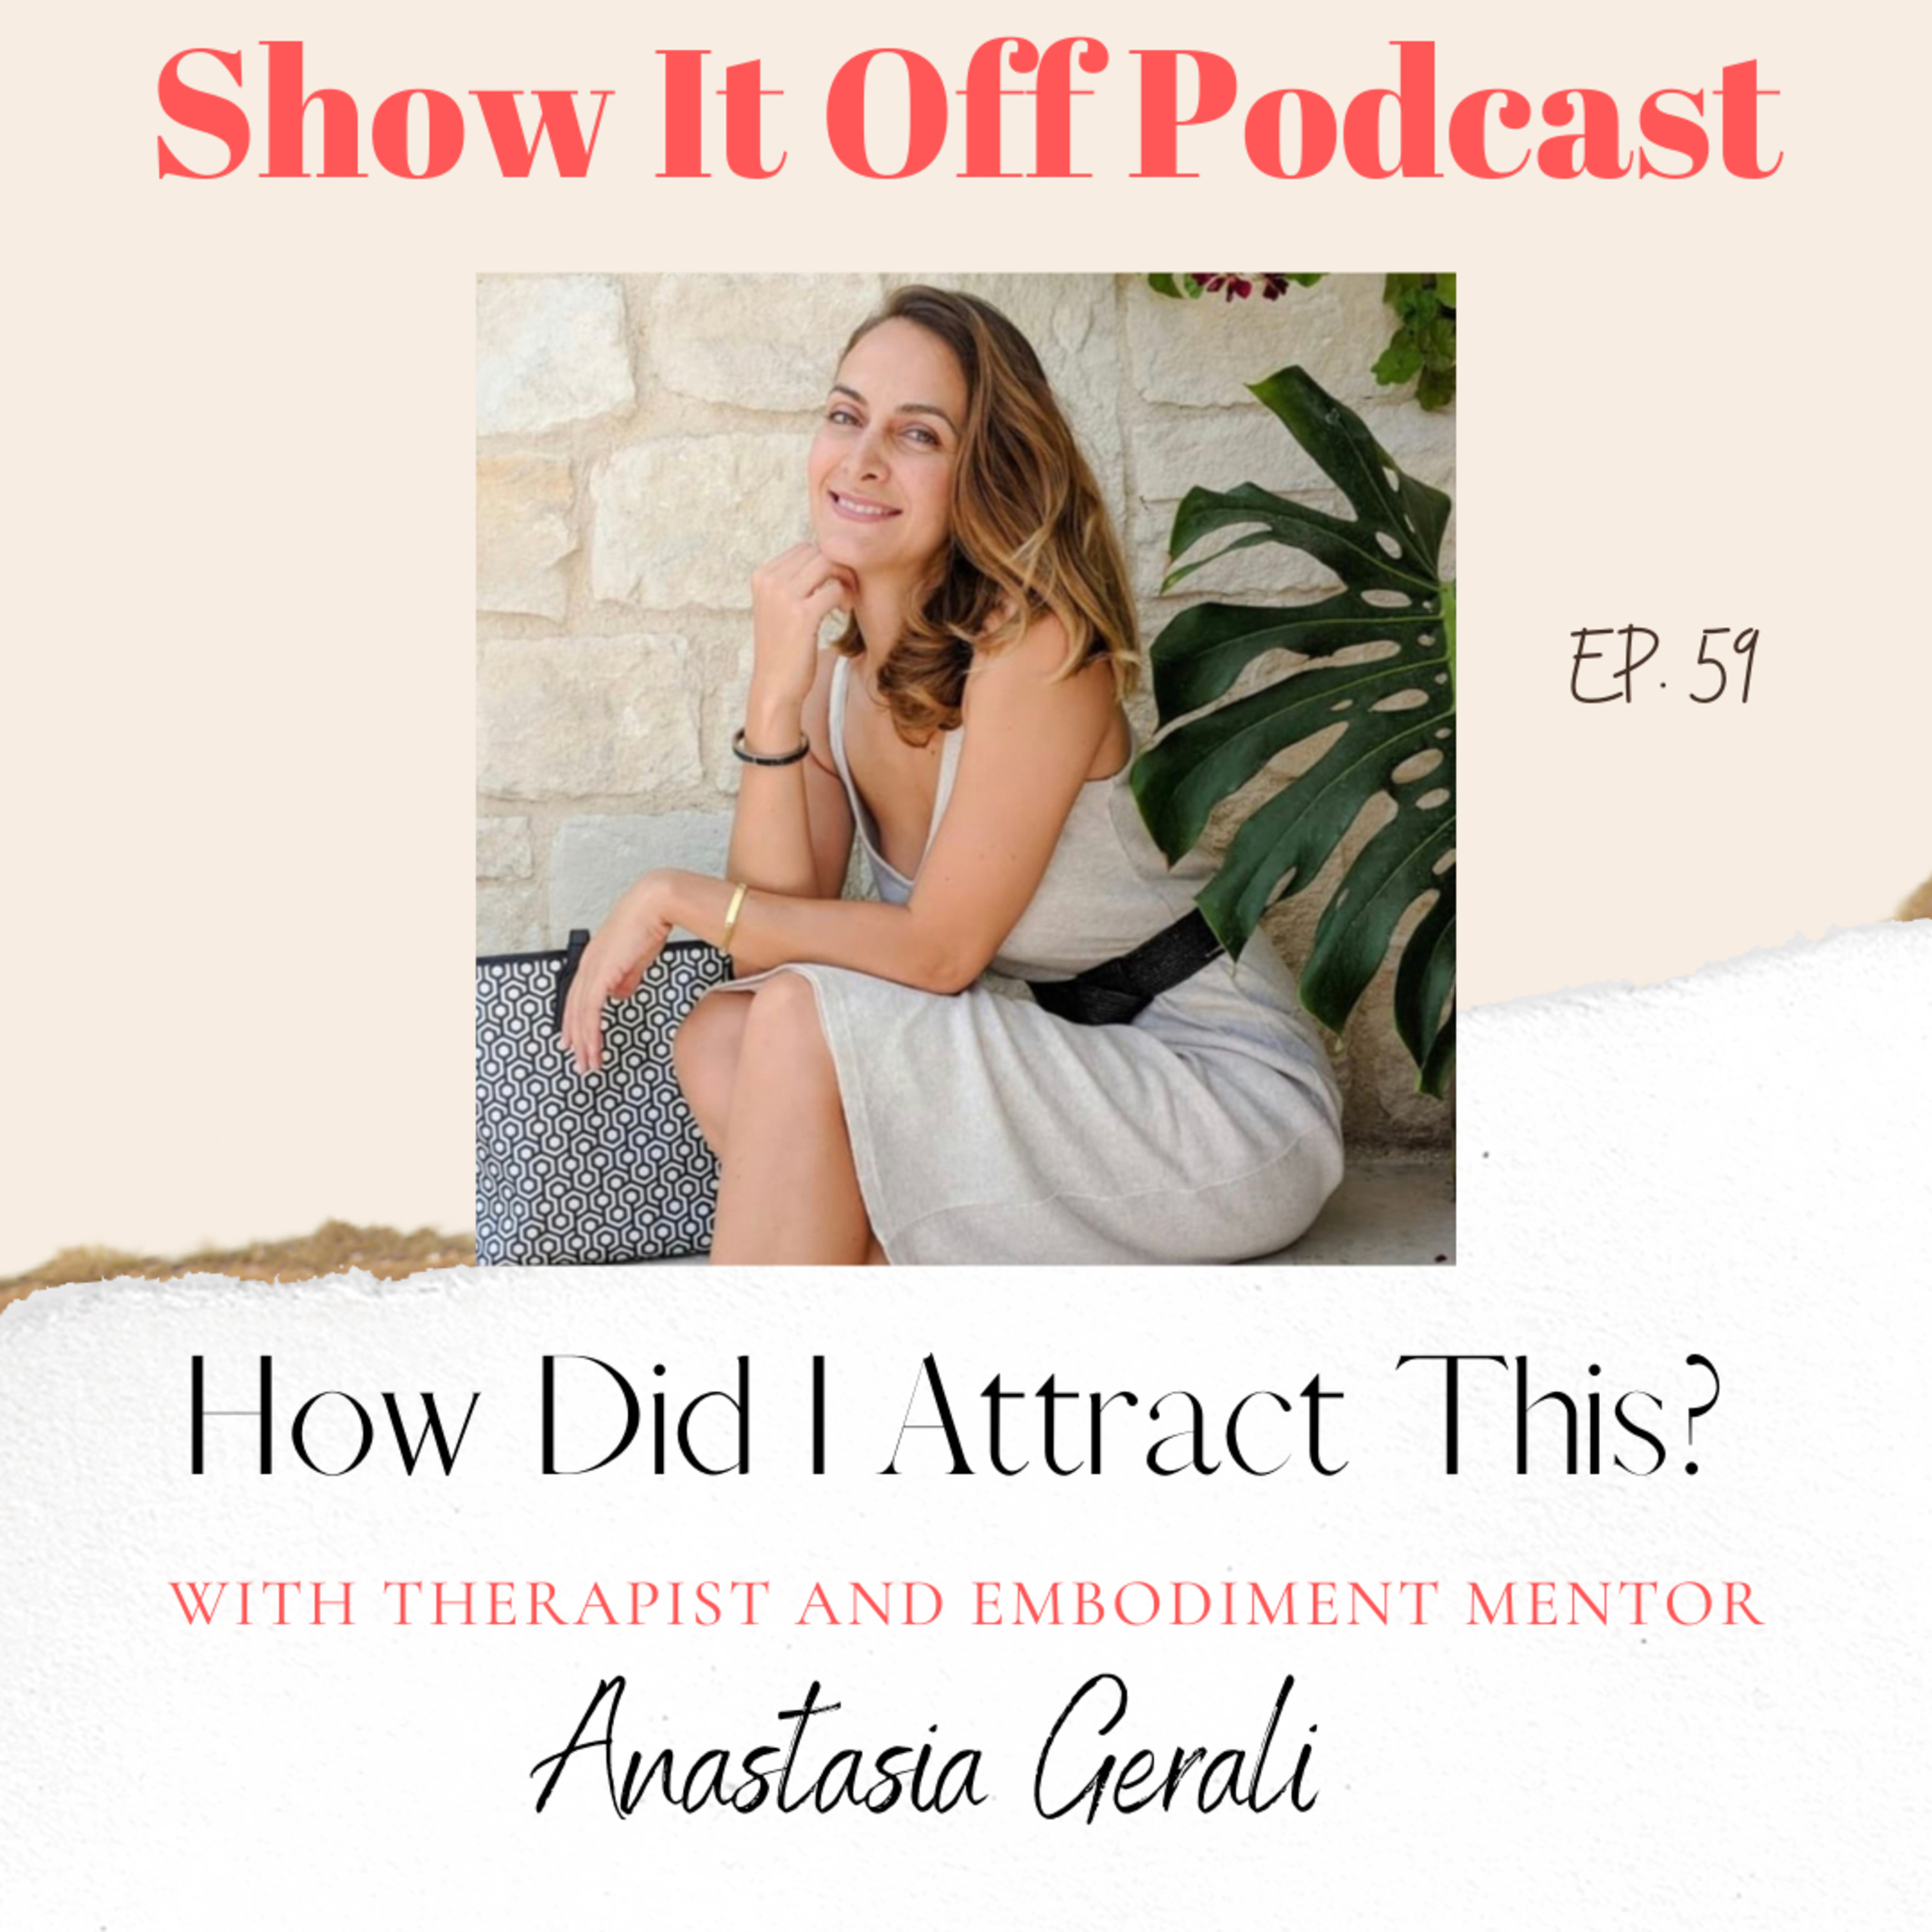 How Did I Attract This? With Therapist and Embodiment Mentor Anastasia Gerali